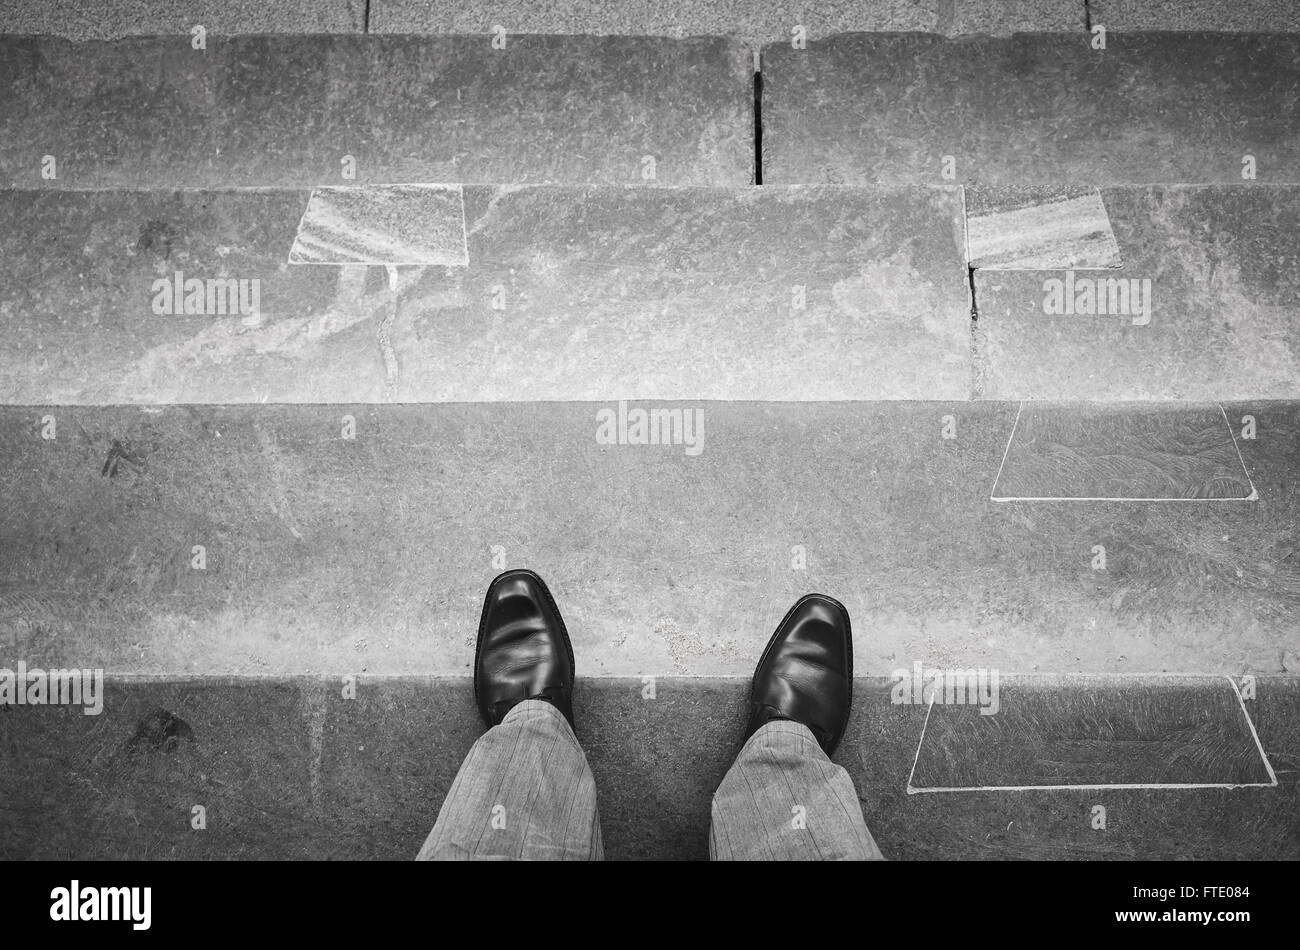 Urbanite man in black new shining leather shoes standing on outdoor stone stairs - Stock Image